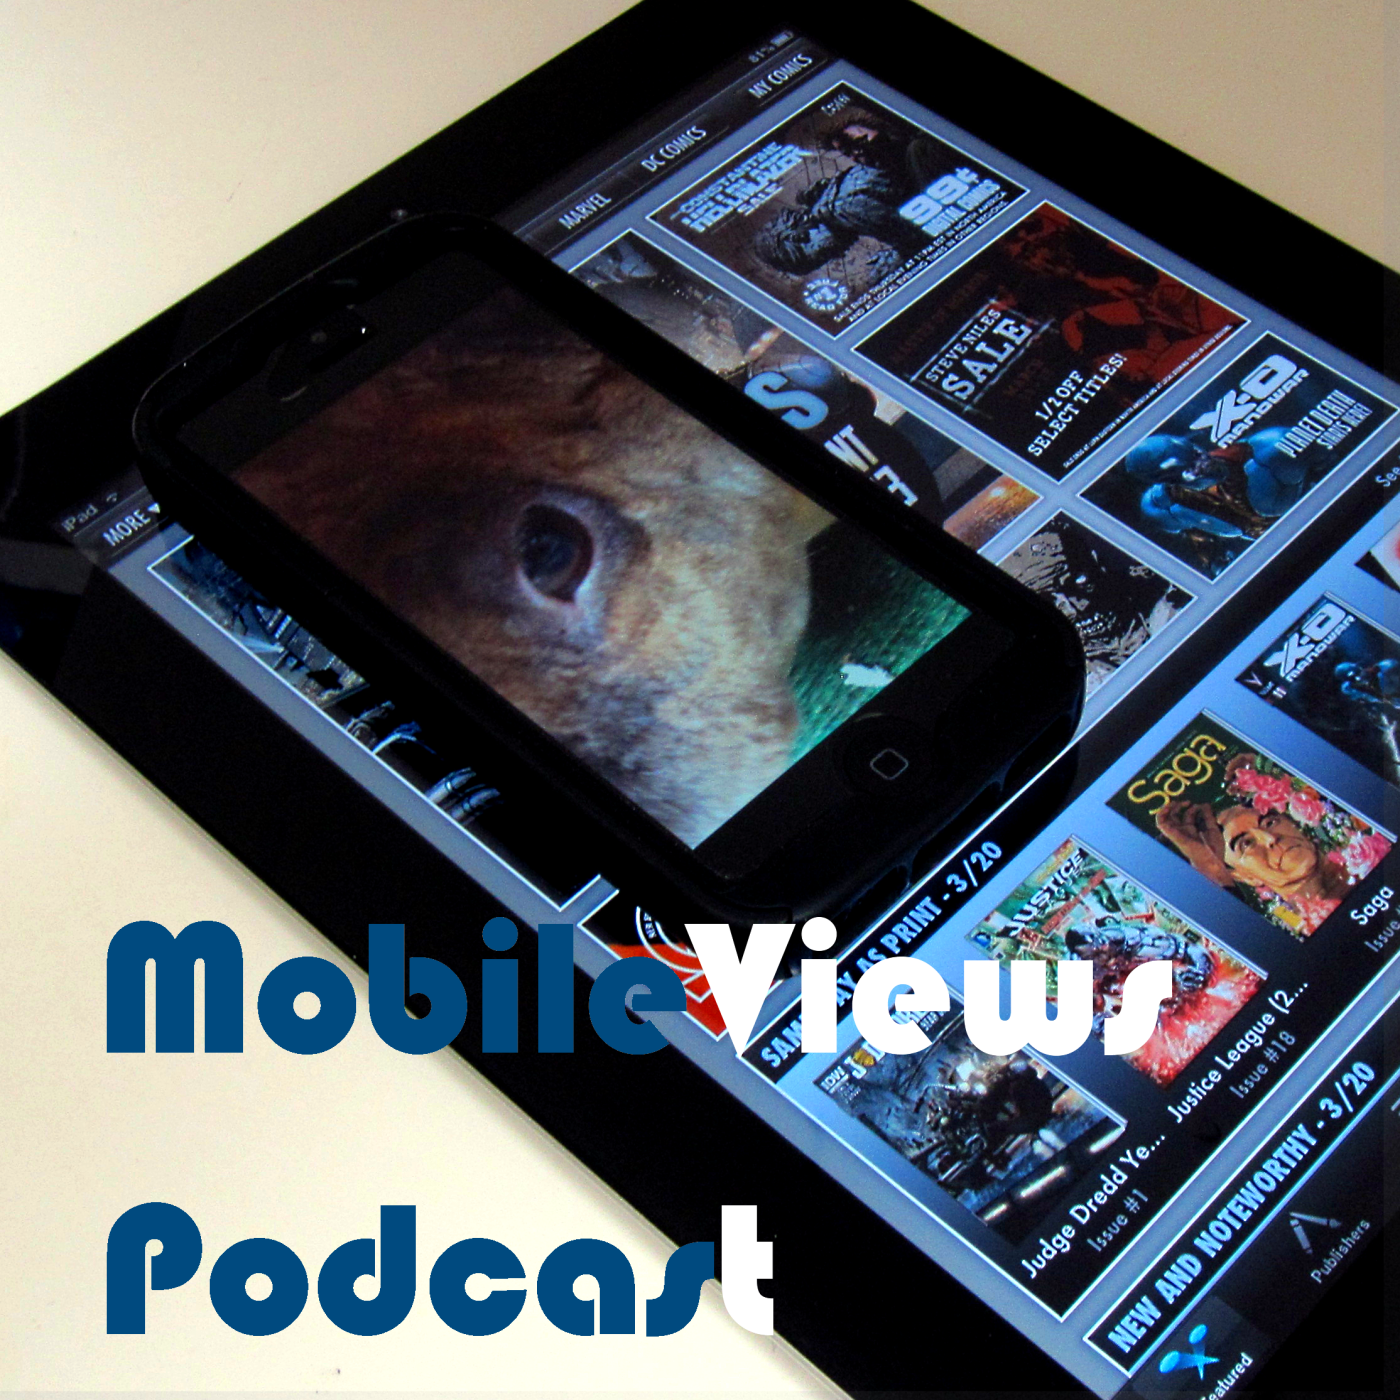 MobileViews Podcast 144: Andreas Sjostrom & his implanted NFC chip